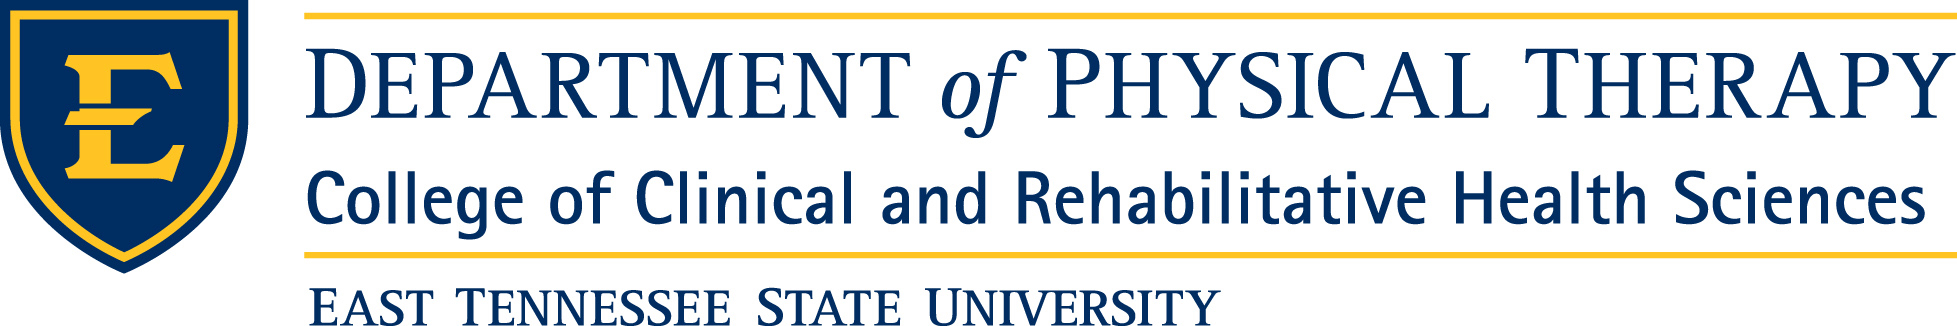 ETSU Physical Therapy Logo